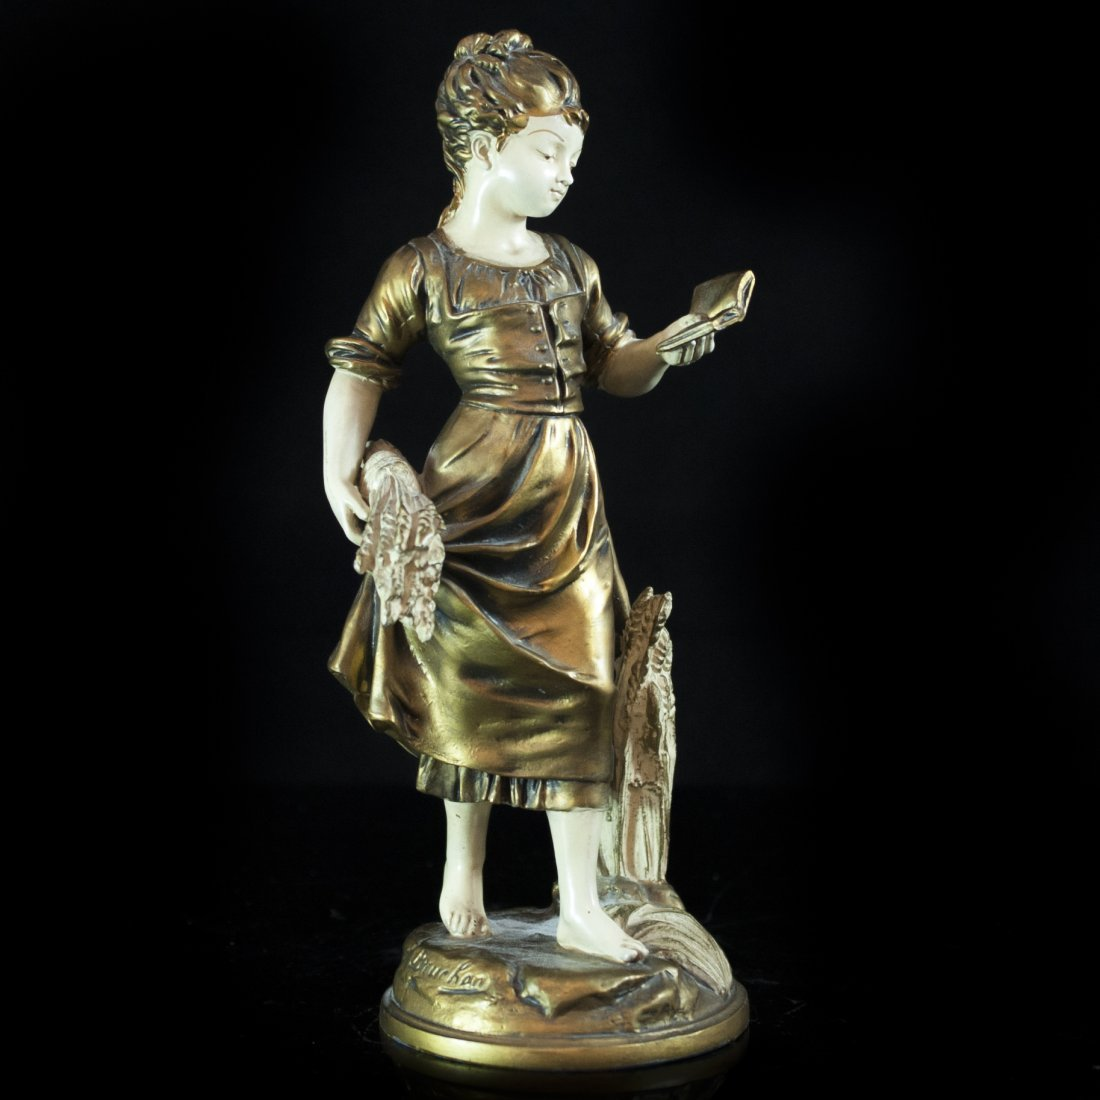 Spelter Sculpture by Emile Bruchon (French, 1806 -